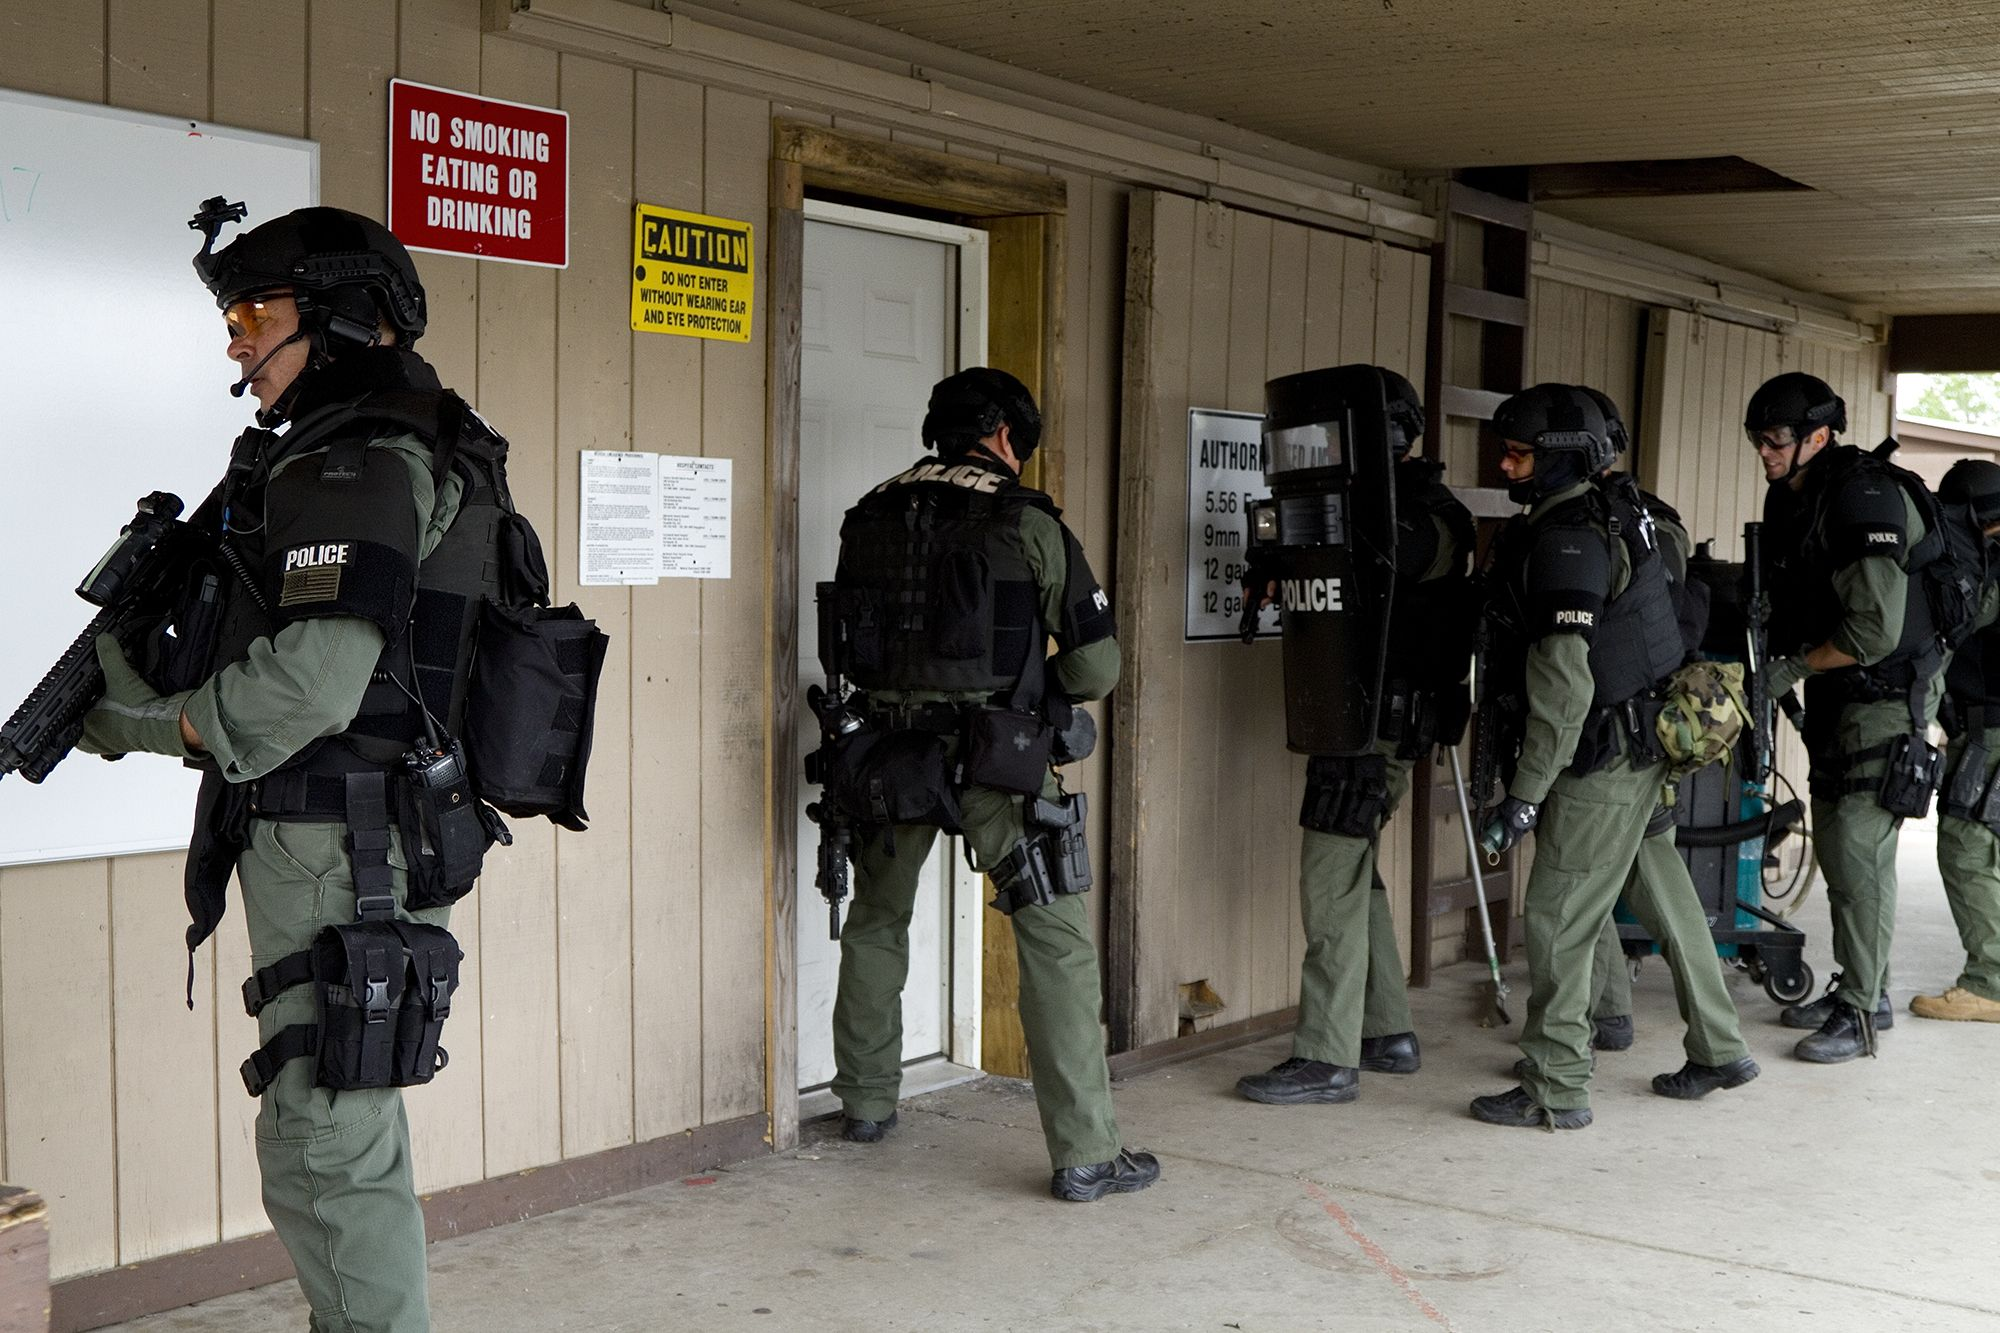 Building entry training   VBPD Special Weapons and Tactics